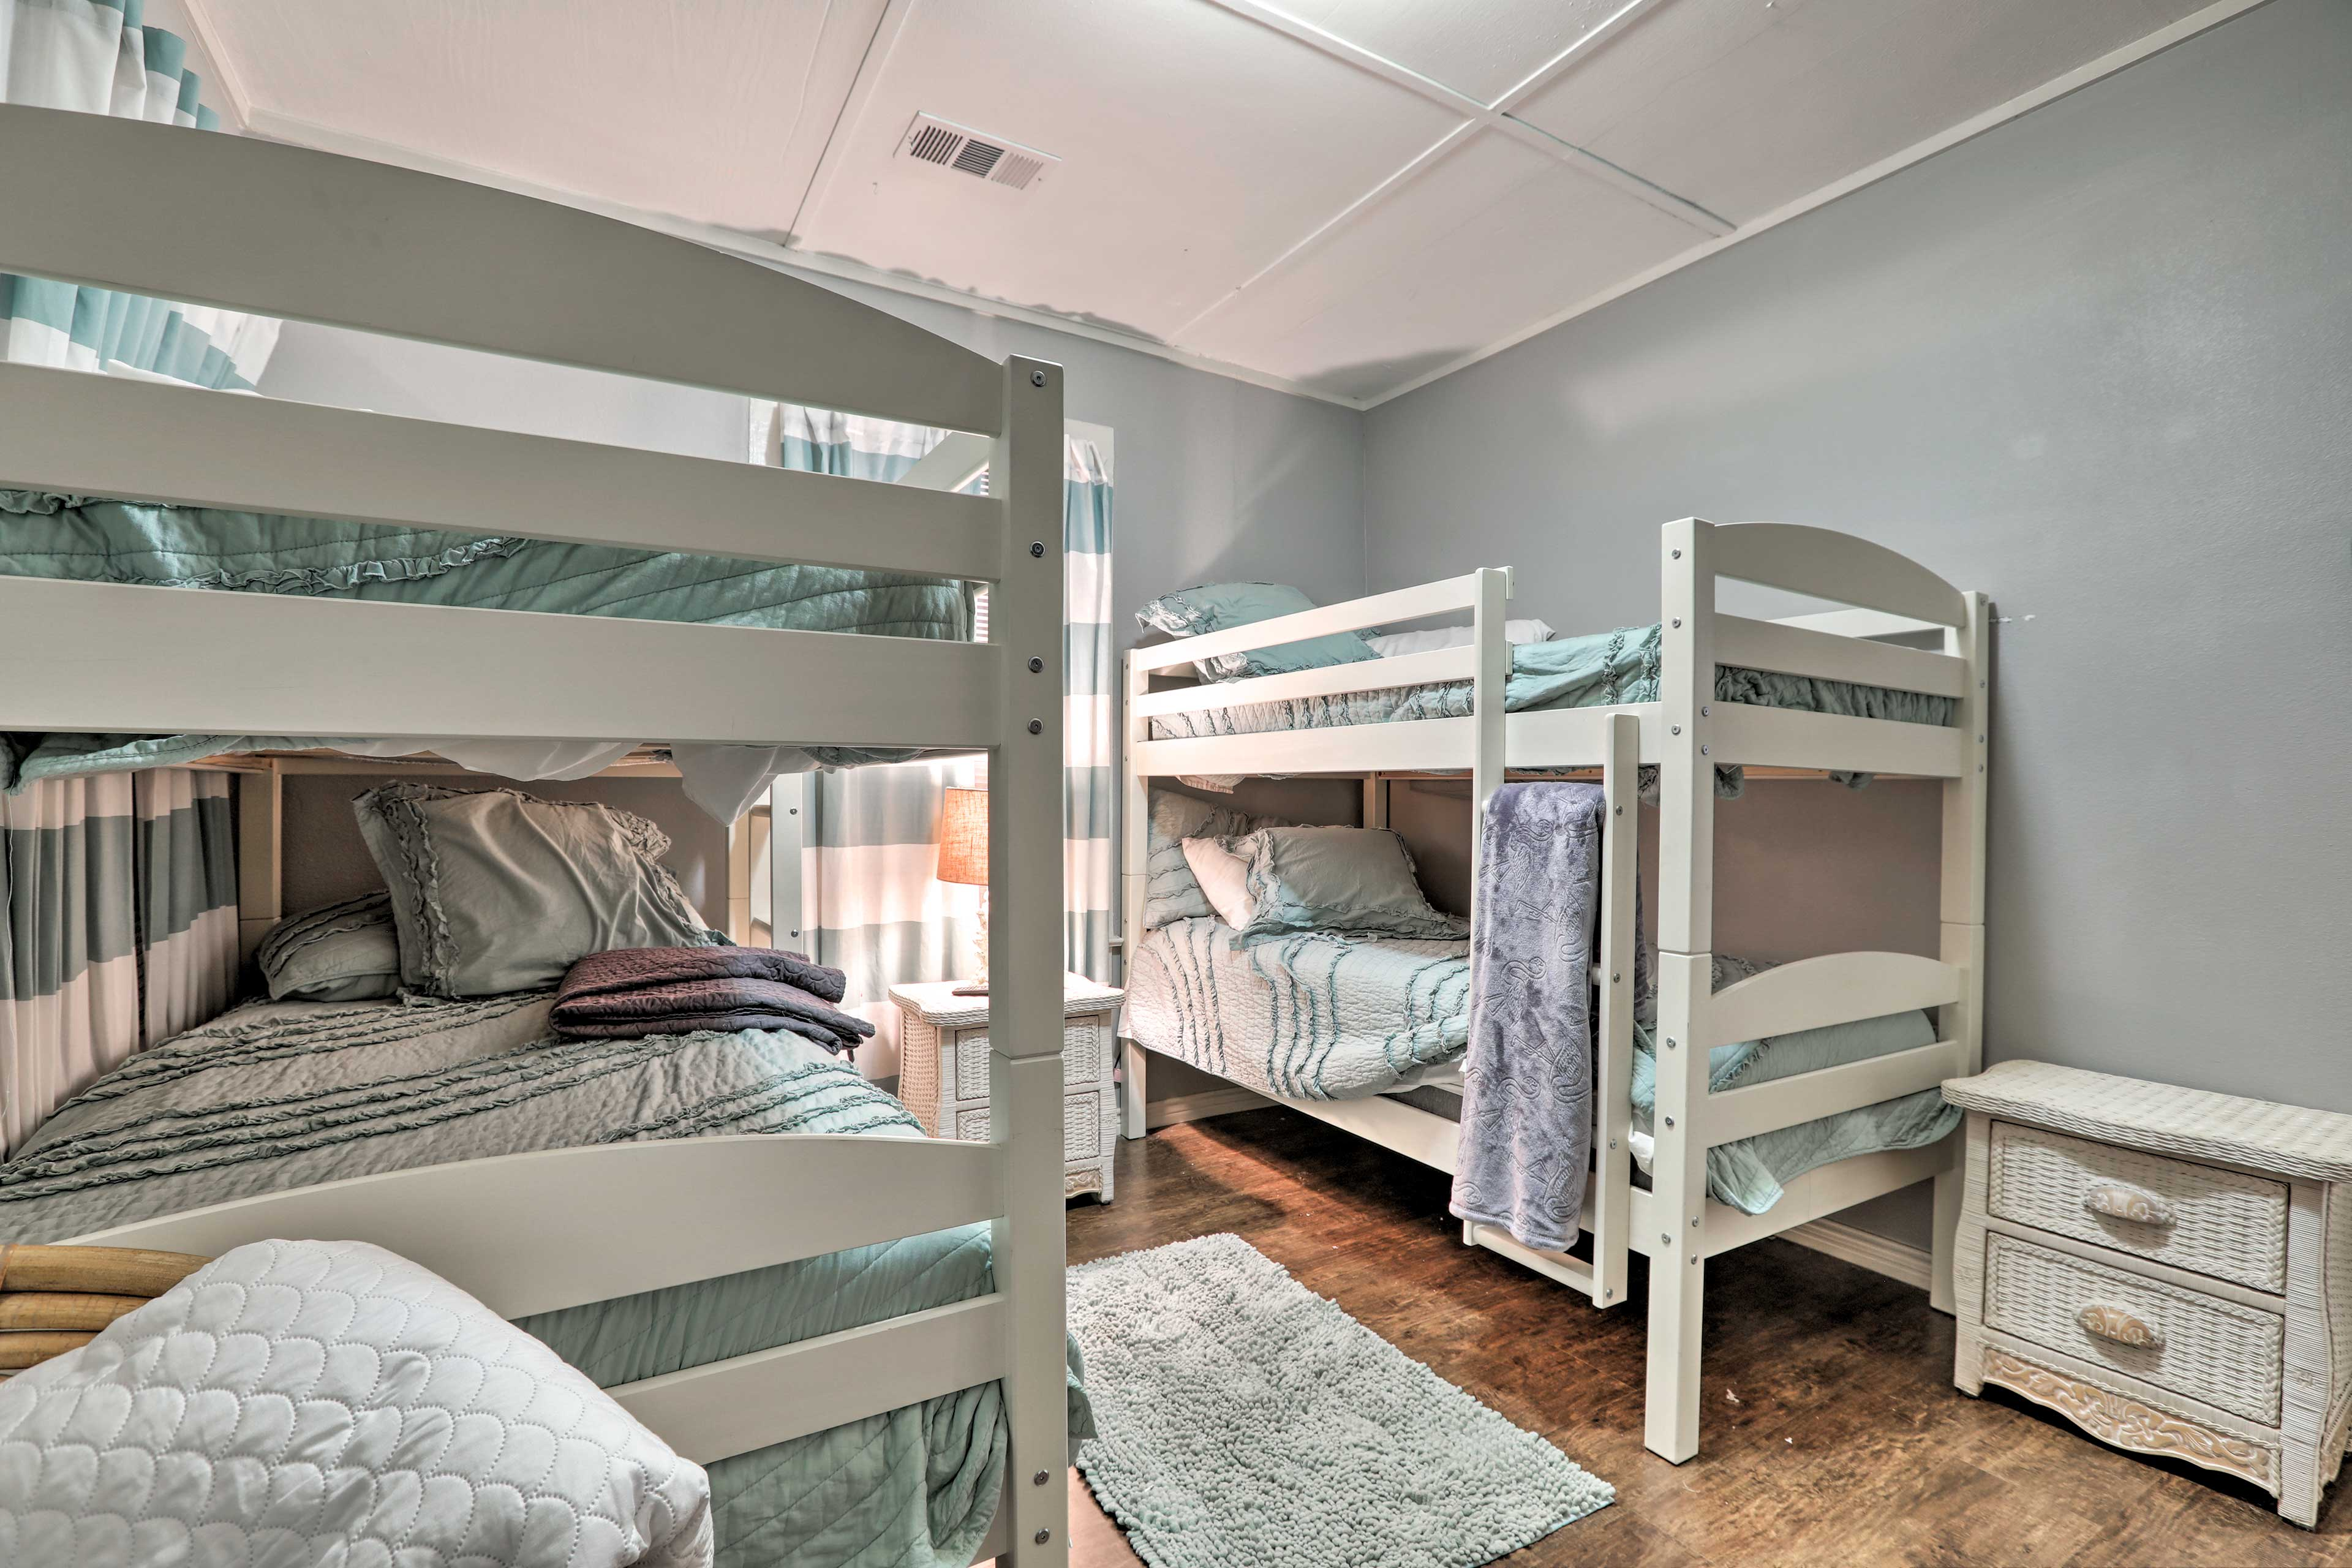 Up to 4 kids or extra guests can snooze in this room.